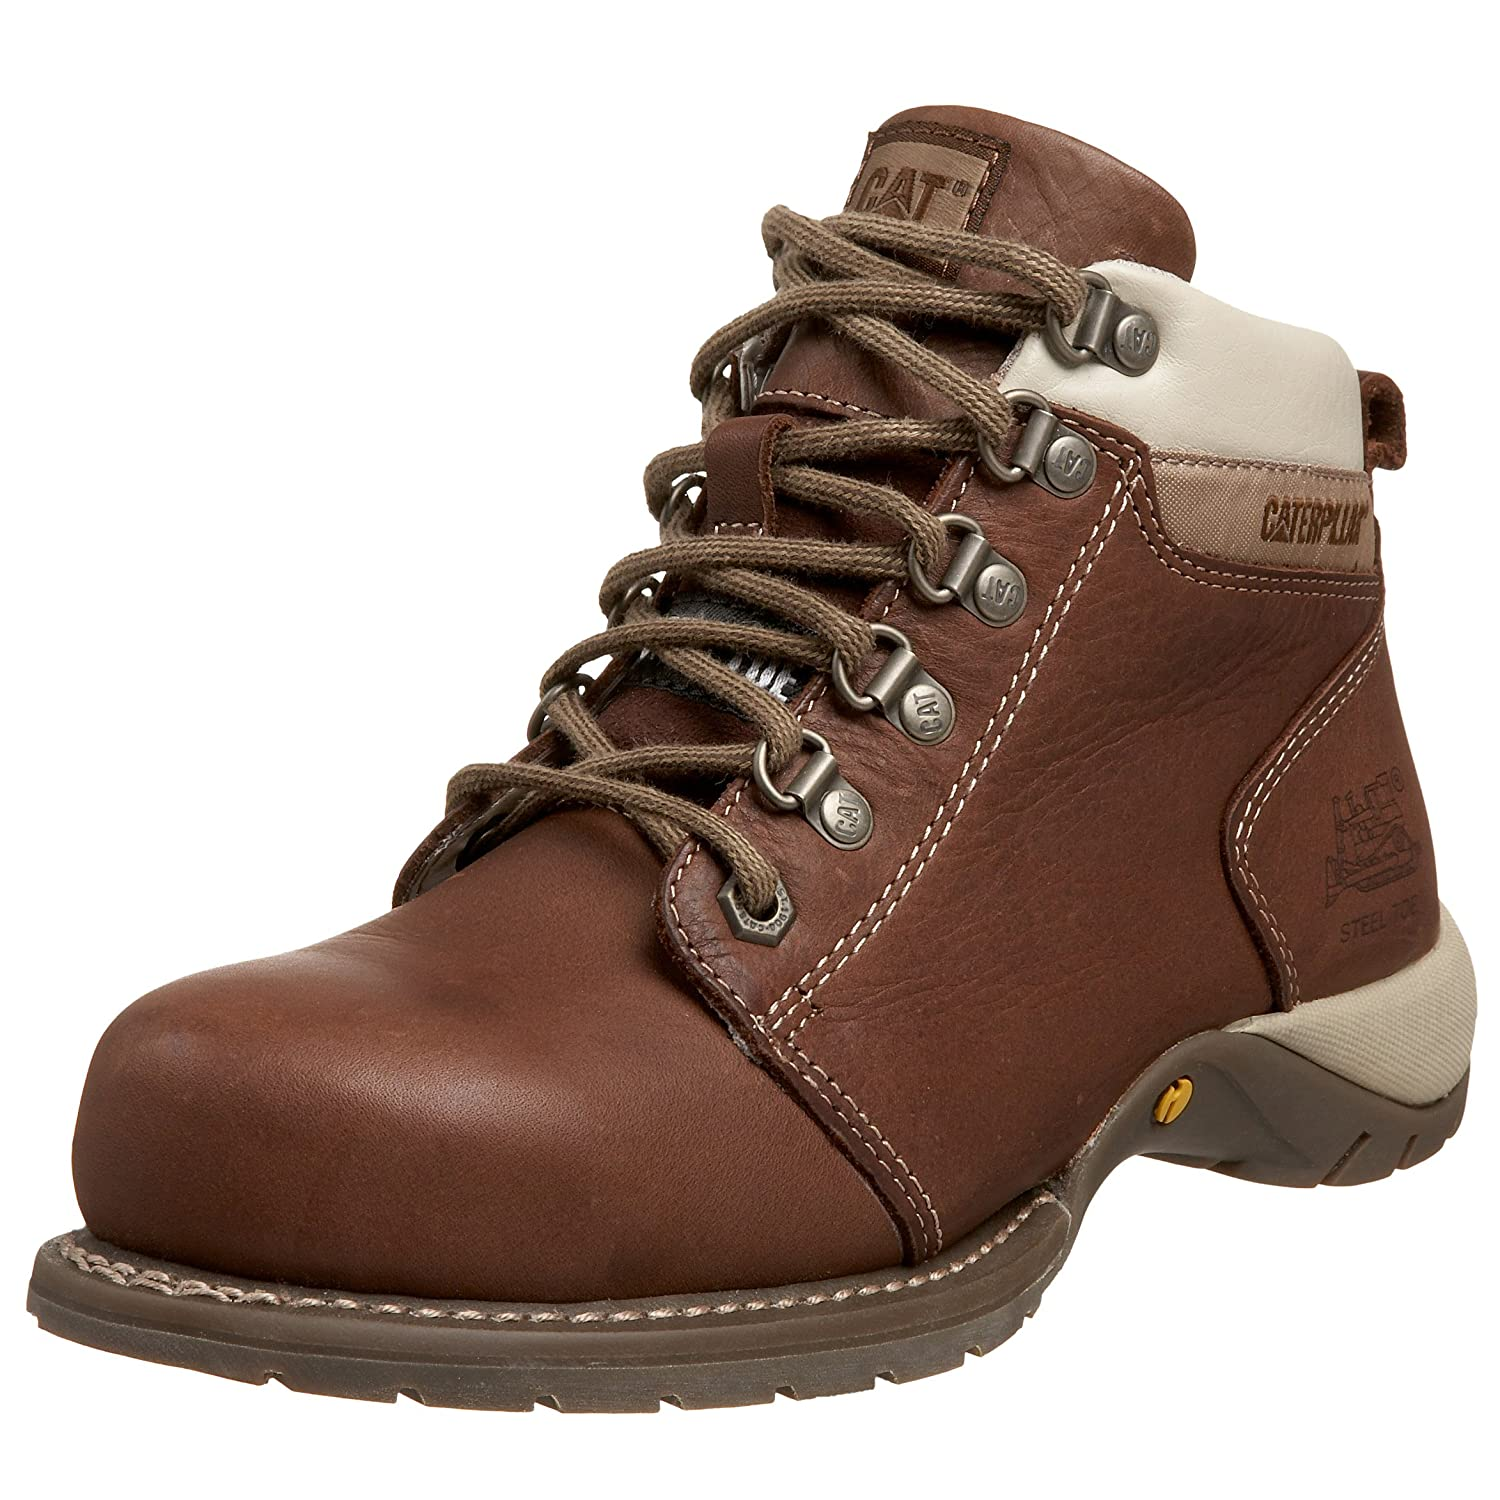 Amazon Com Caterpillar Women S Carlie Steel Toe Work Boot Shoes